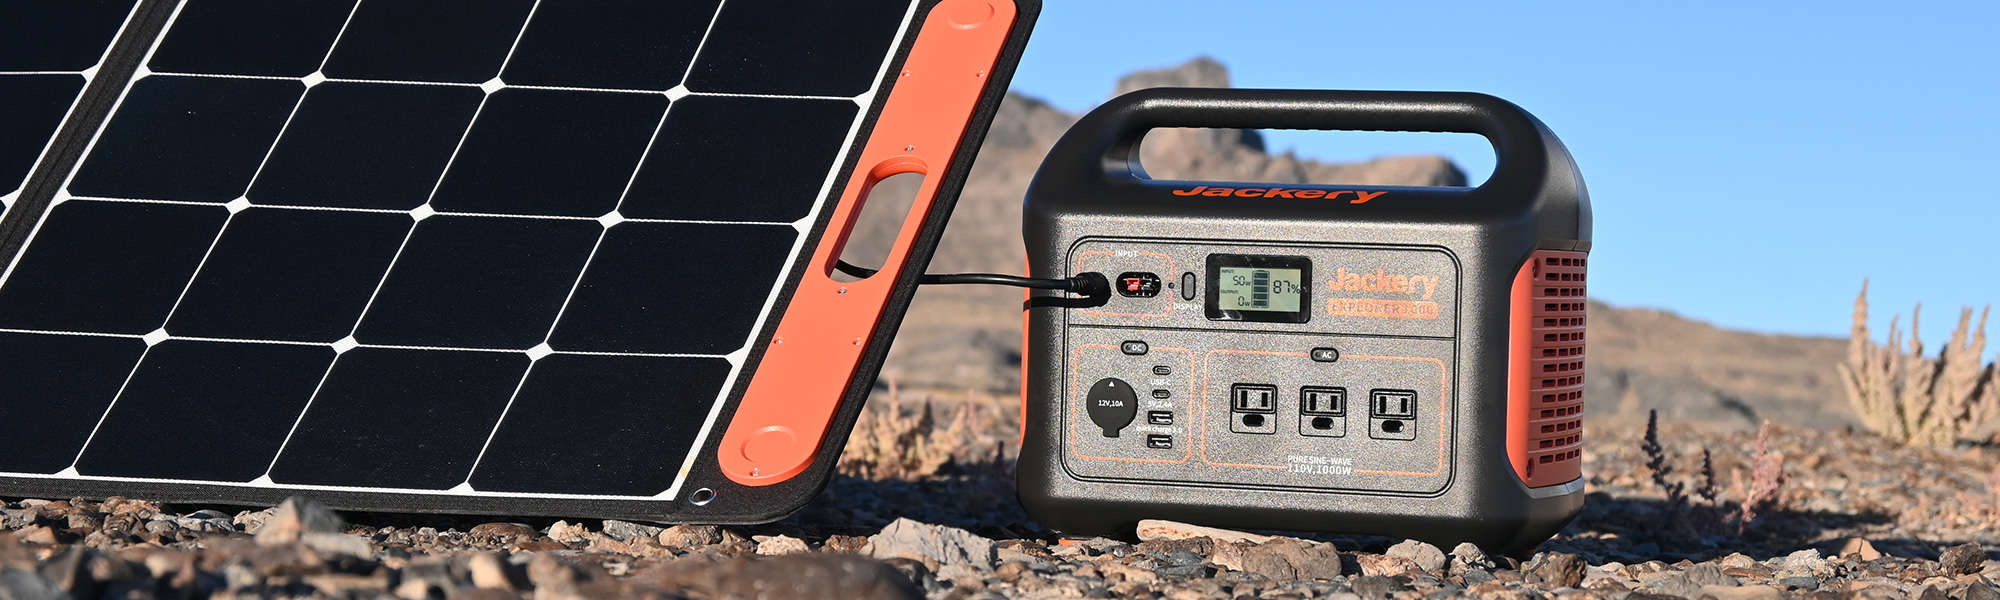 Jackery Explorer 1000 being charged by a SolarSaga 100W